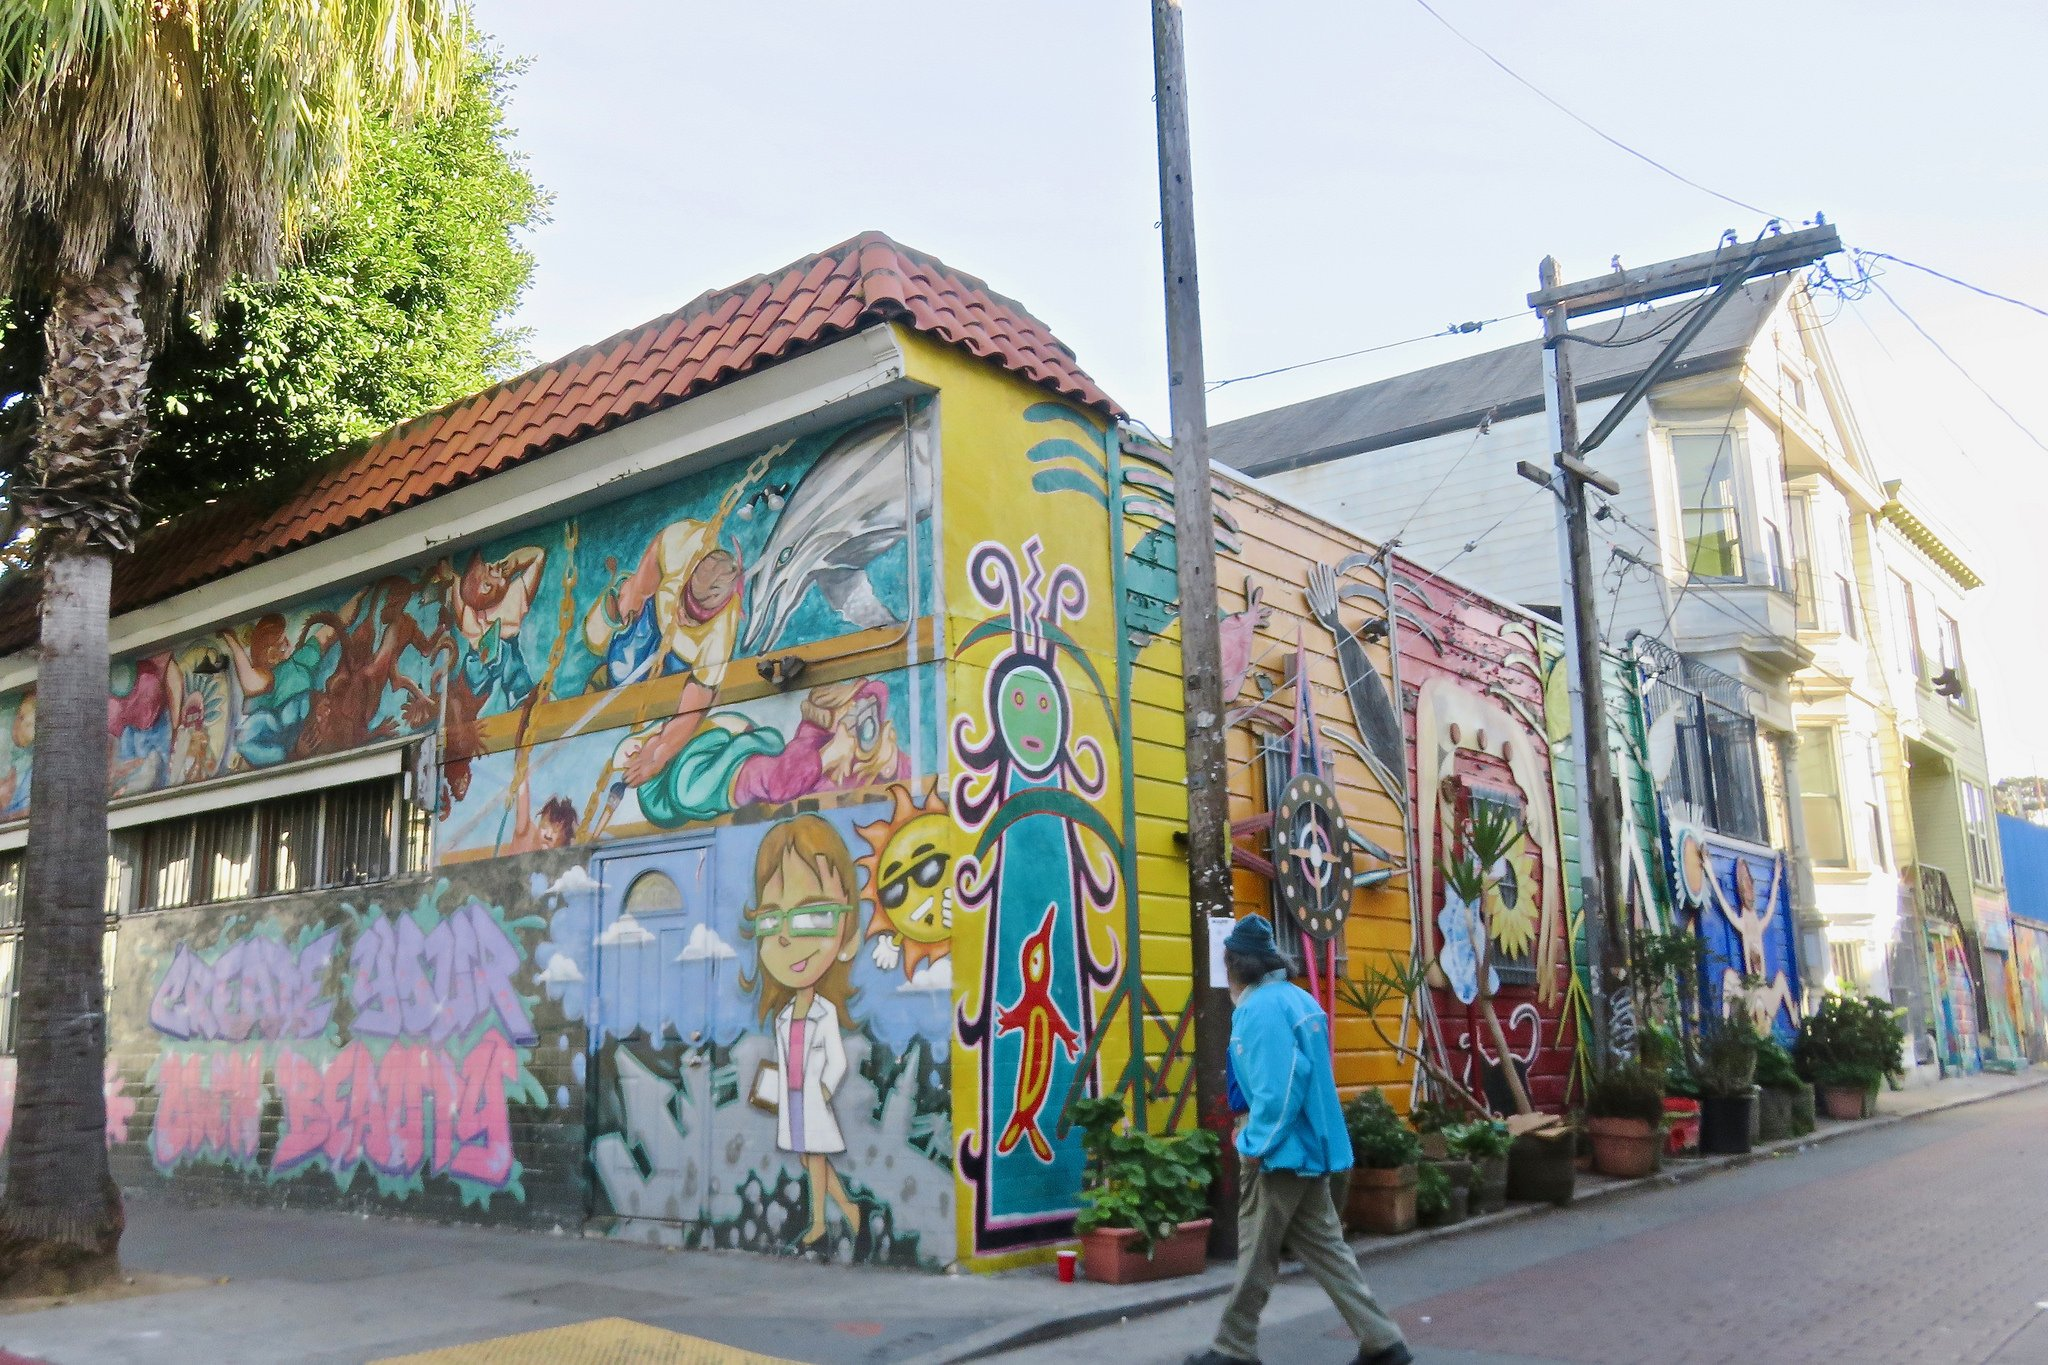 Things to do in San Francisco - Mission District